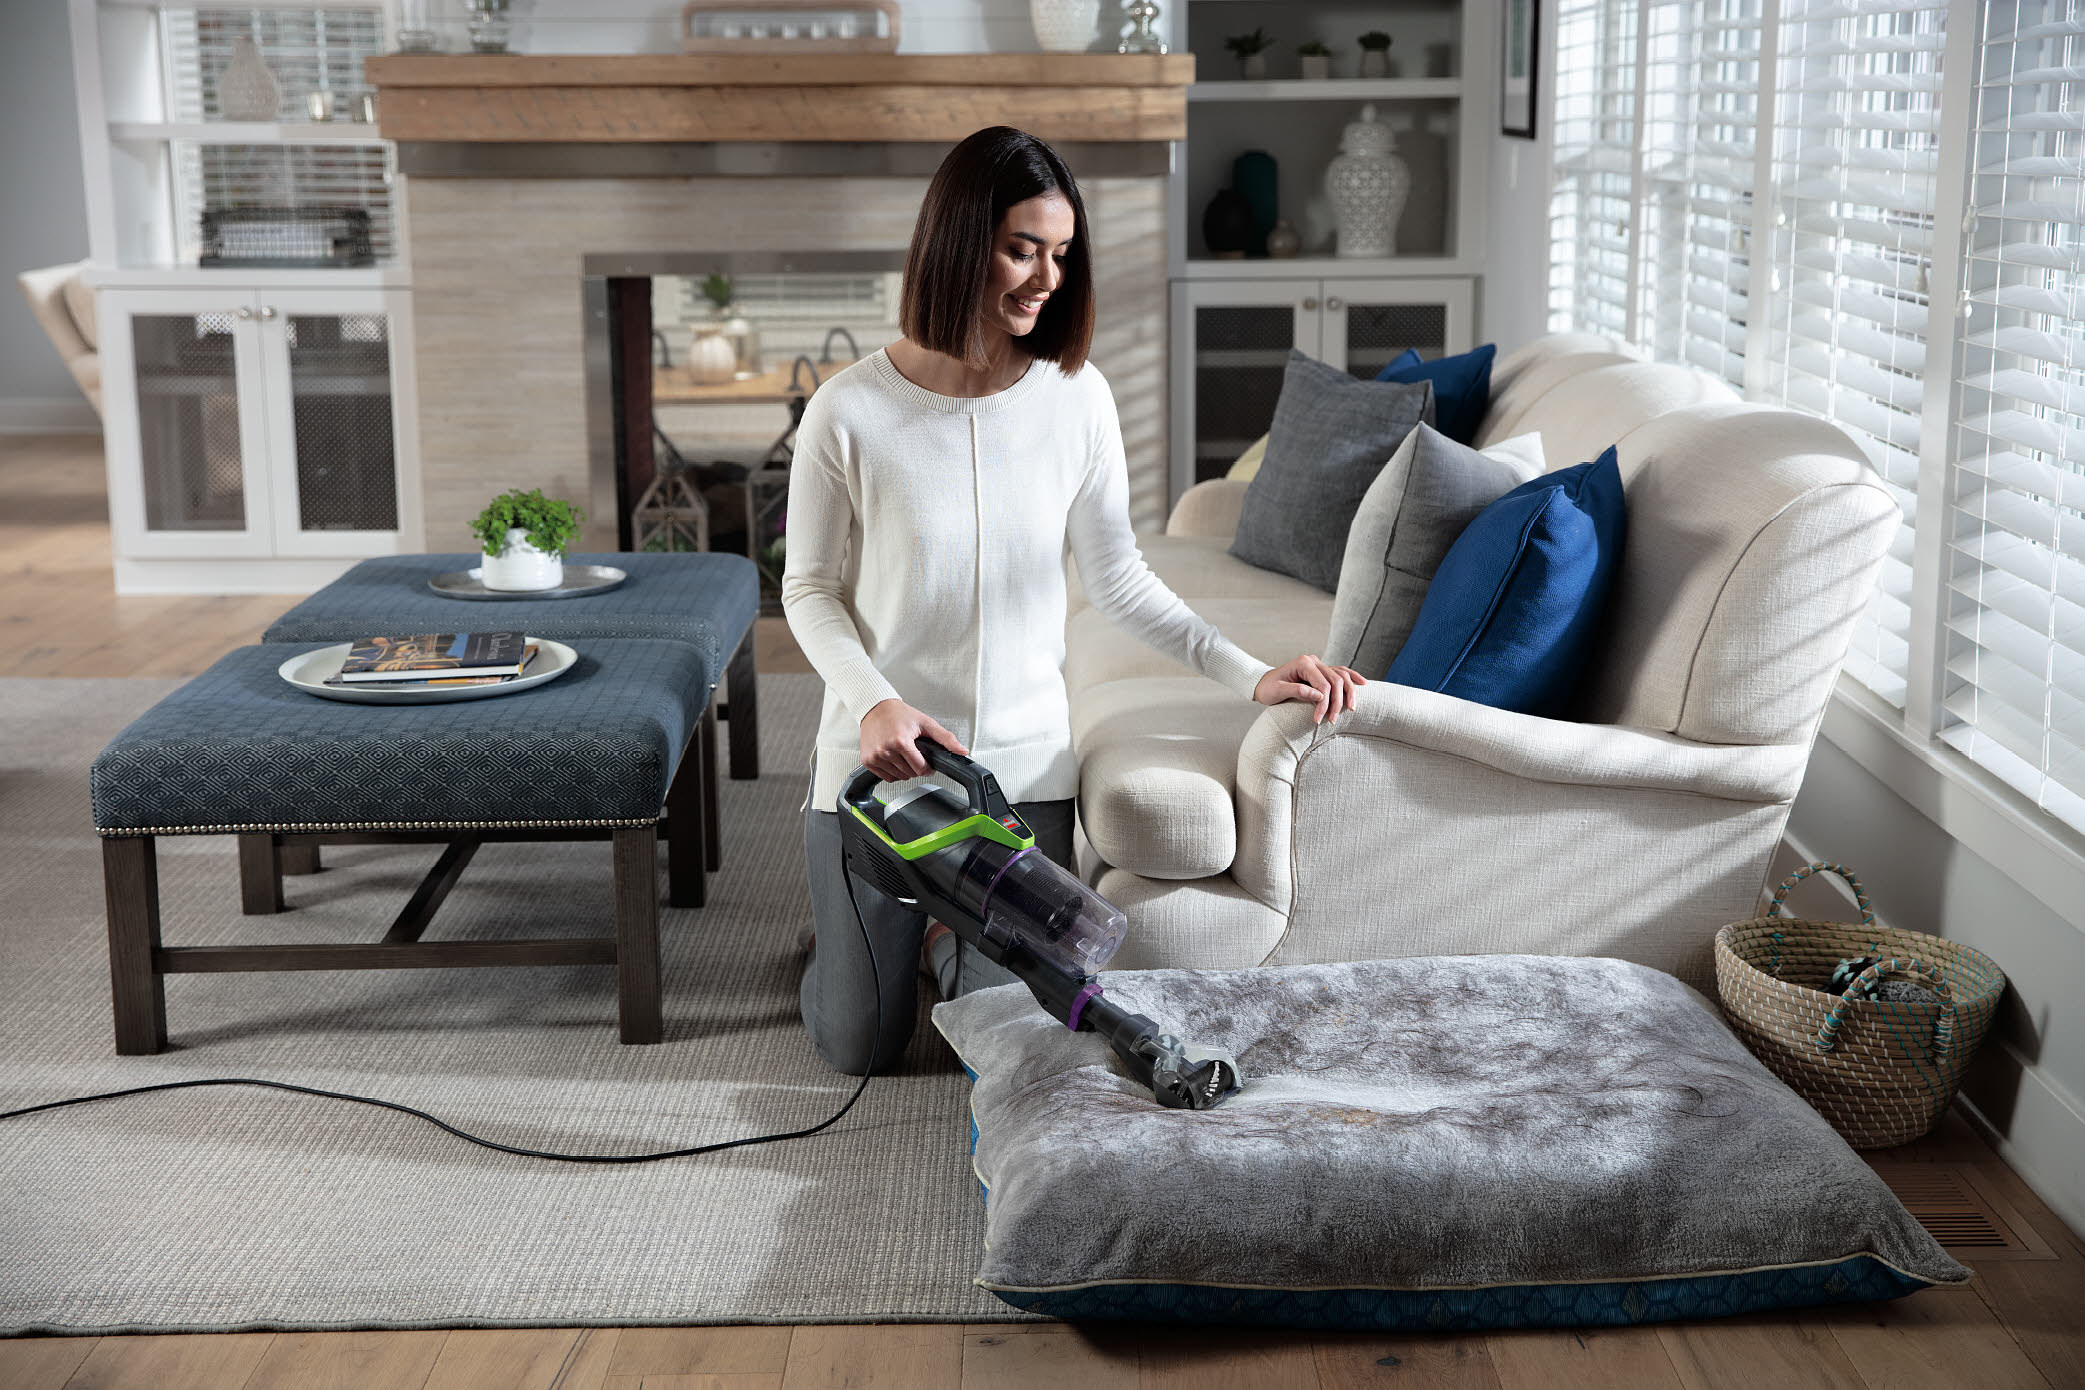 A model using the vacuum on a pet bed